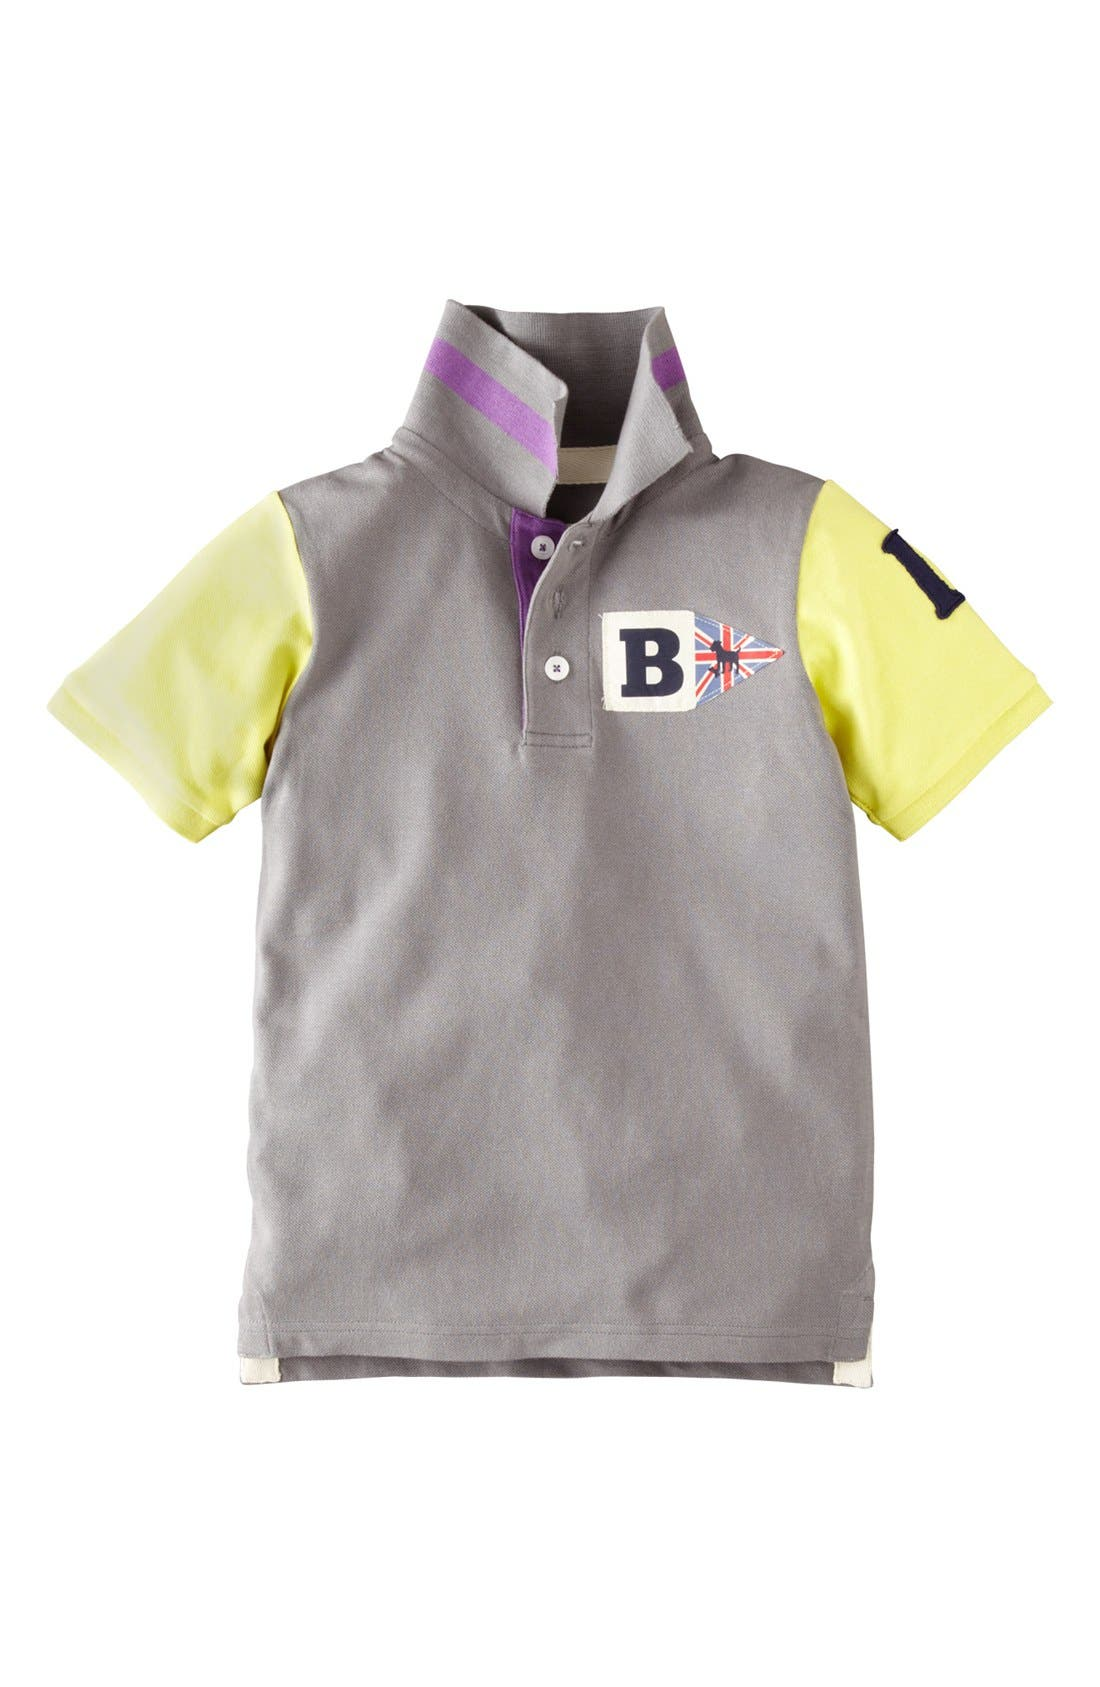 Main Image - Mini Boden Colorblock Polo Shirt (Toddler Boys, Little Boys & Big Boys)